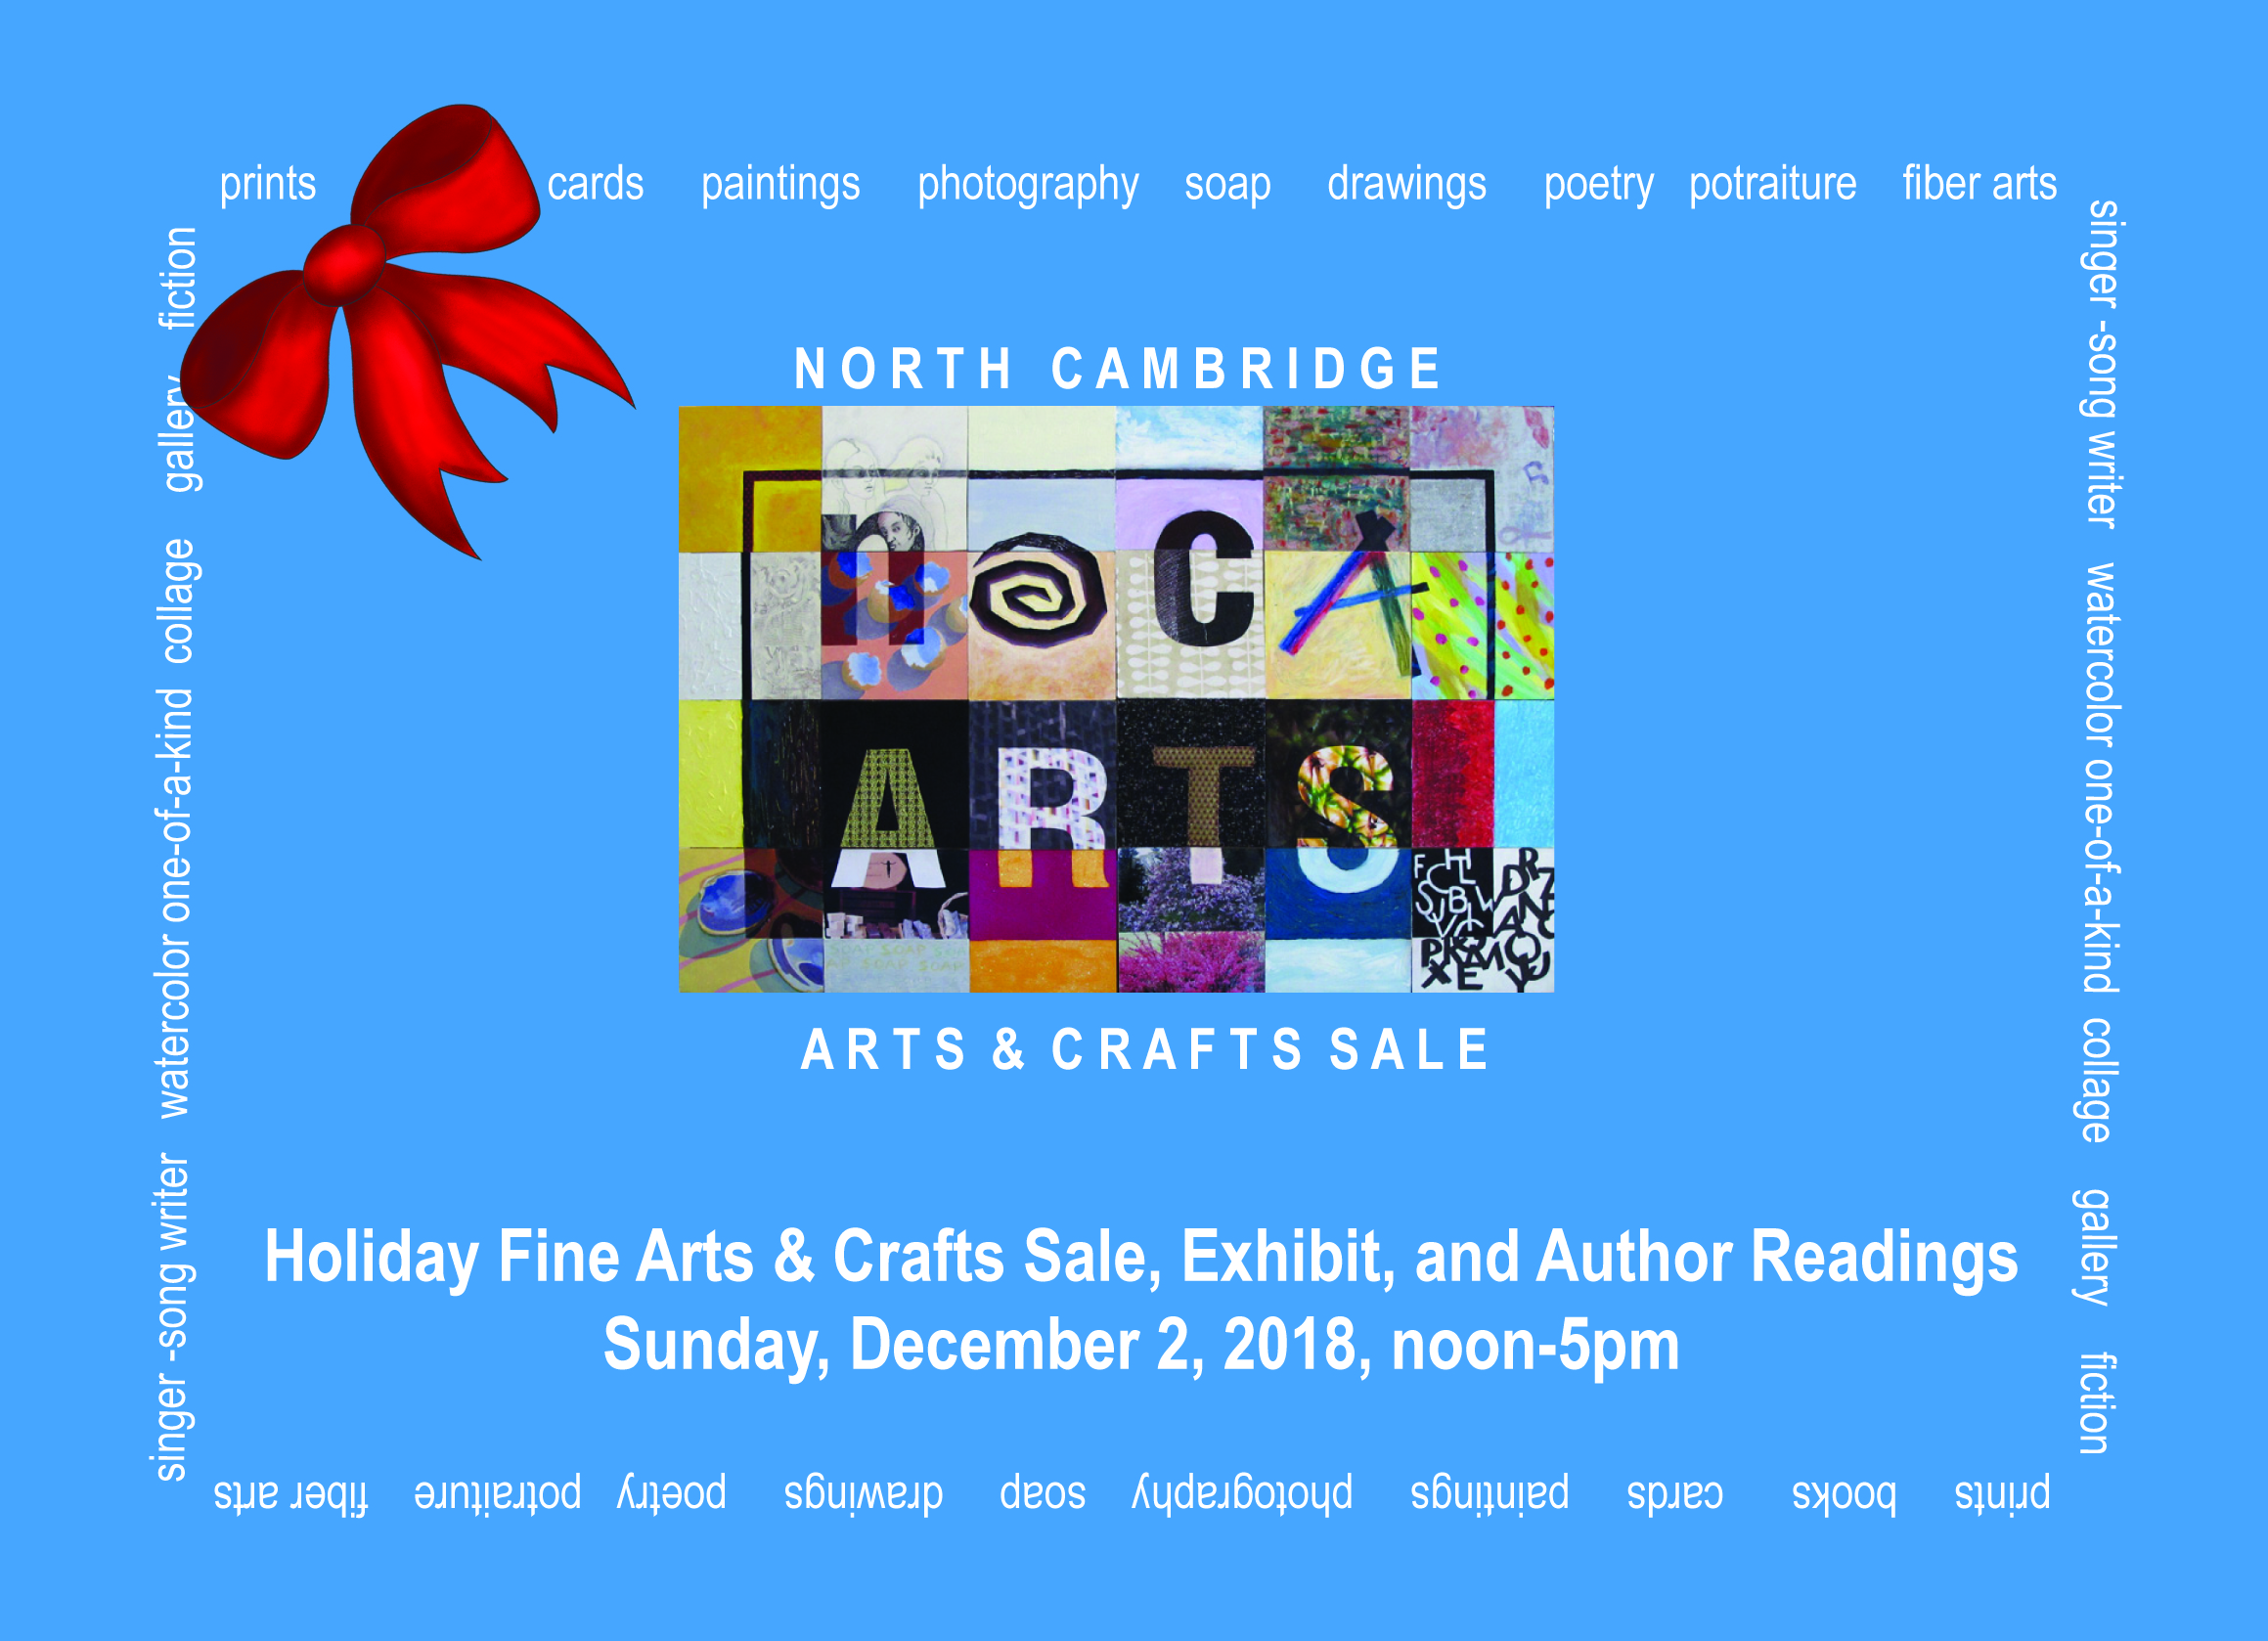 North Cambridge arts and crafts sale poster